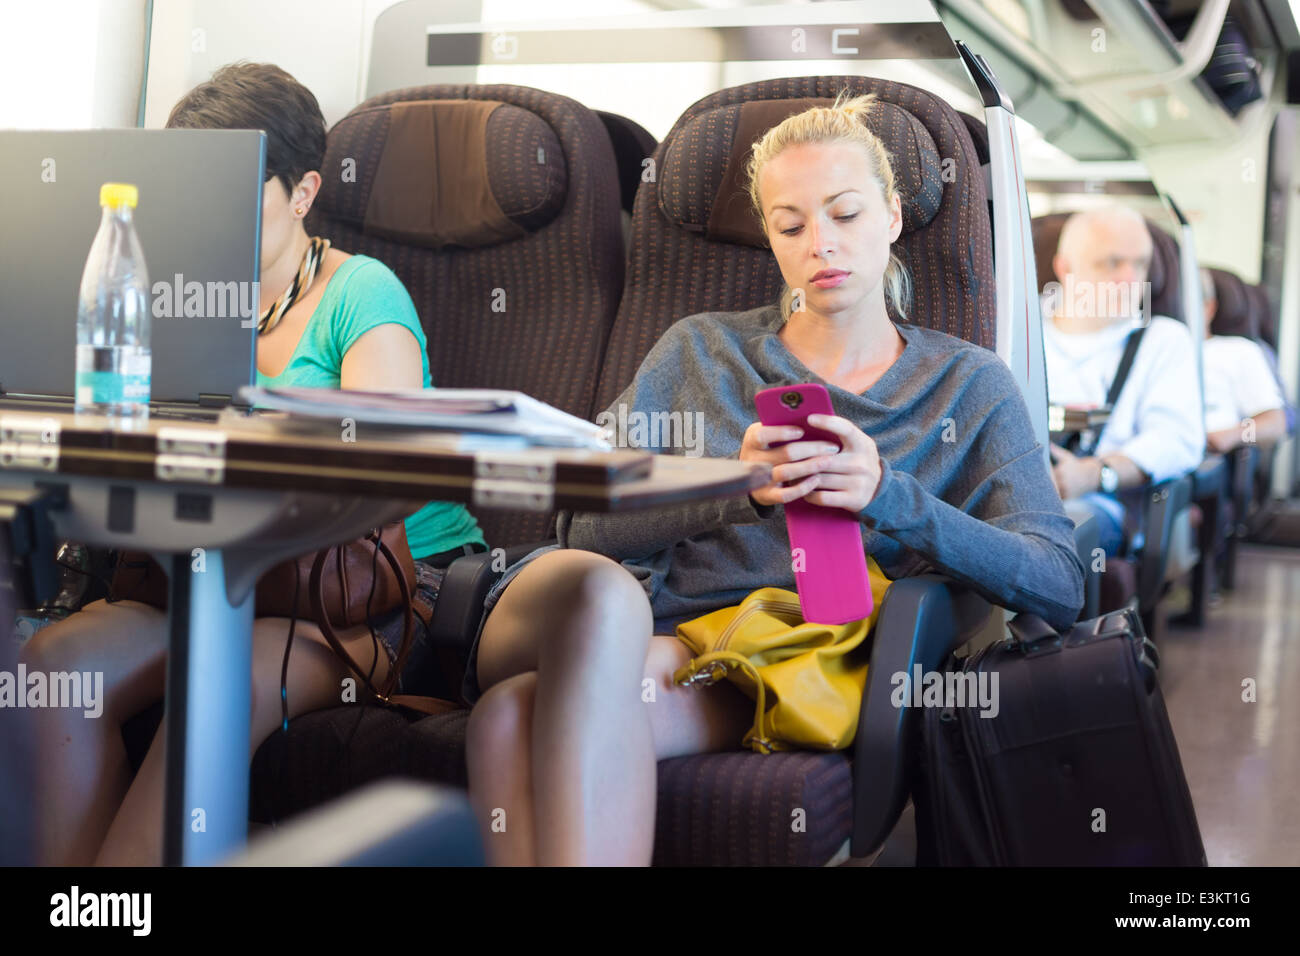 Lady traveling by train using smartphone. - Stock Image